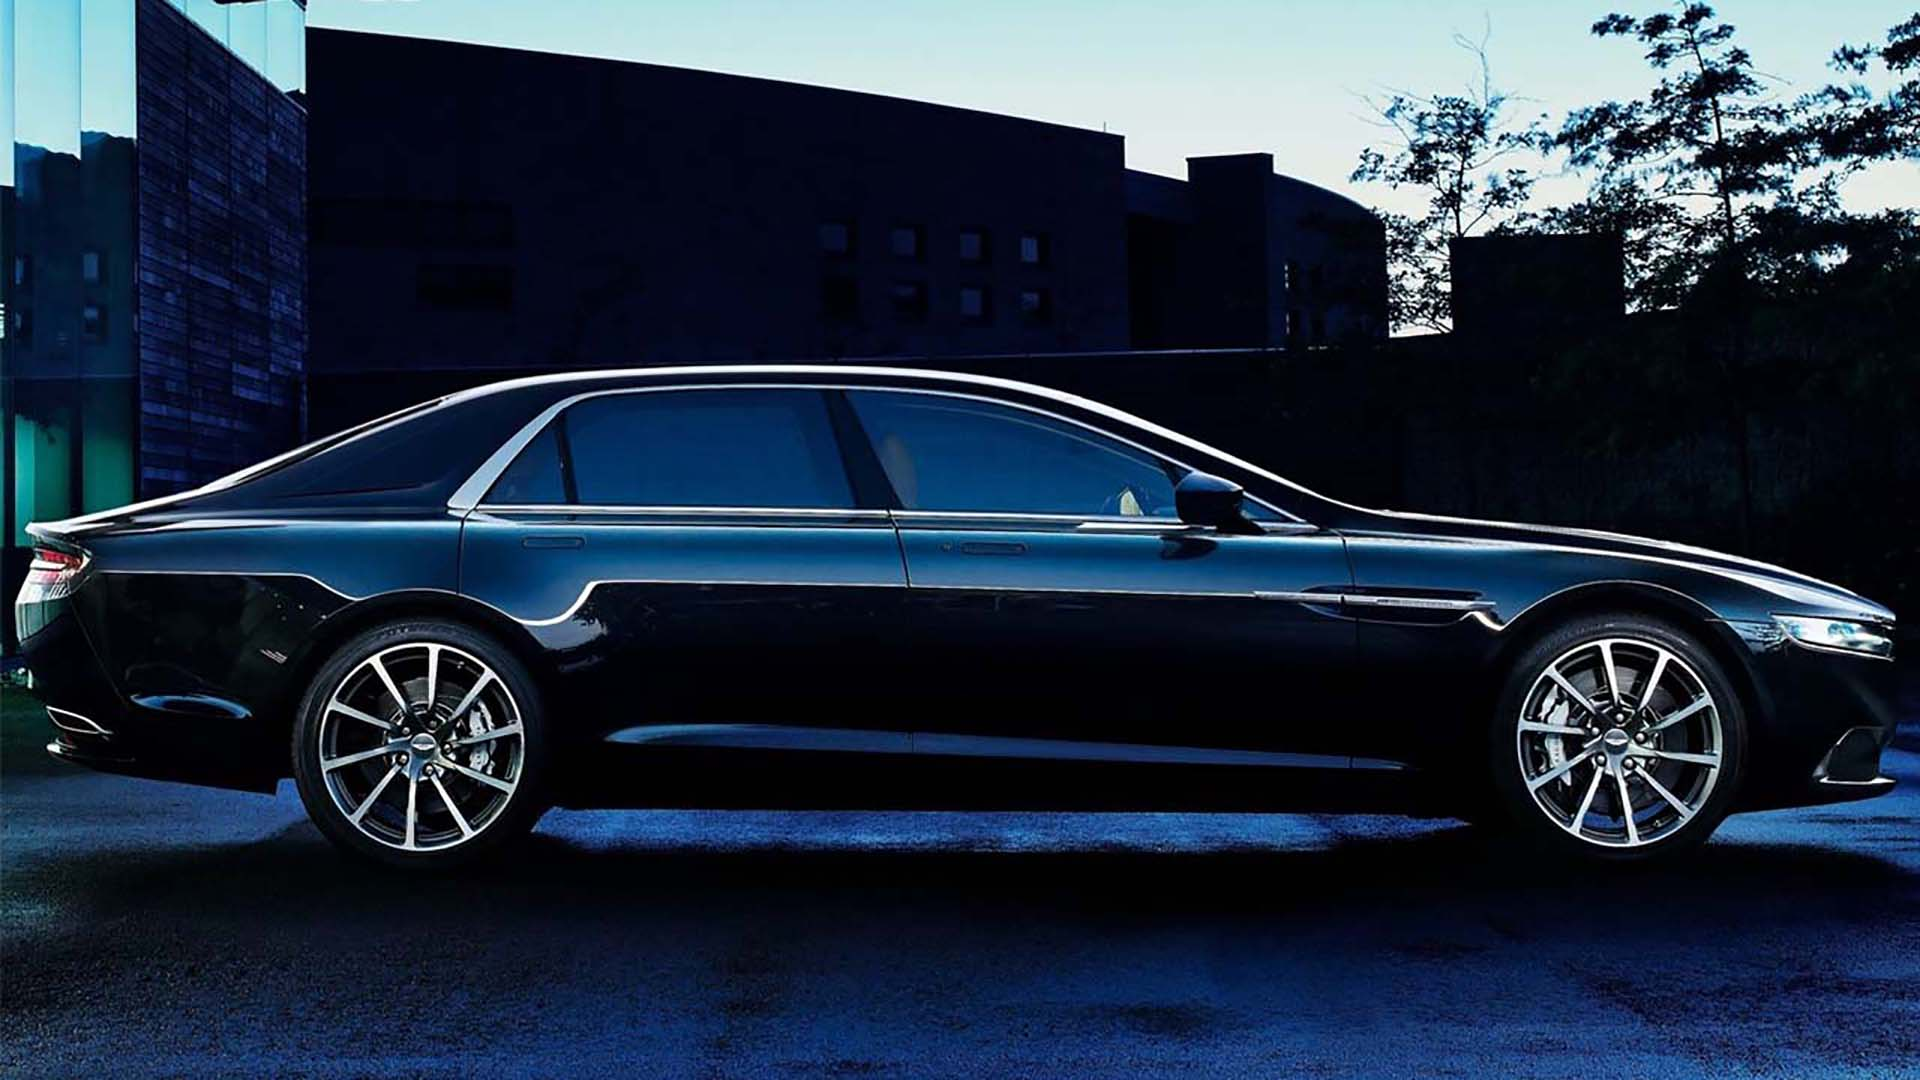 Aston Martin Lagonda design by ADP Special Projects